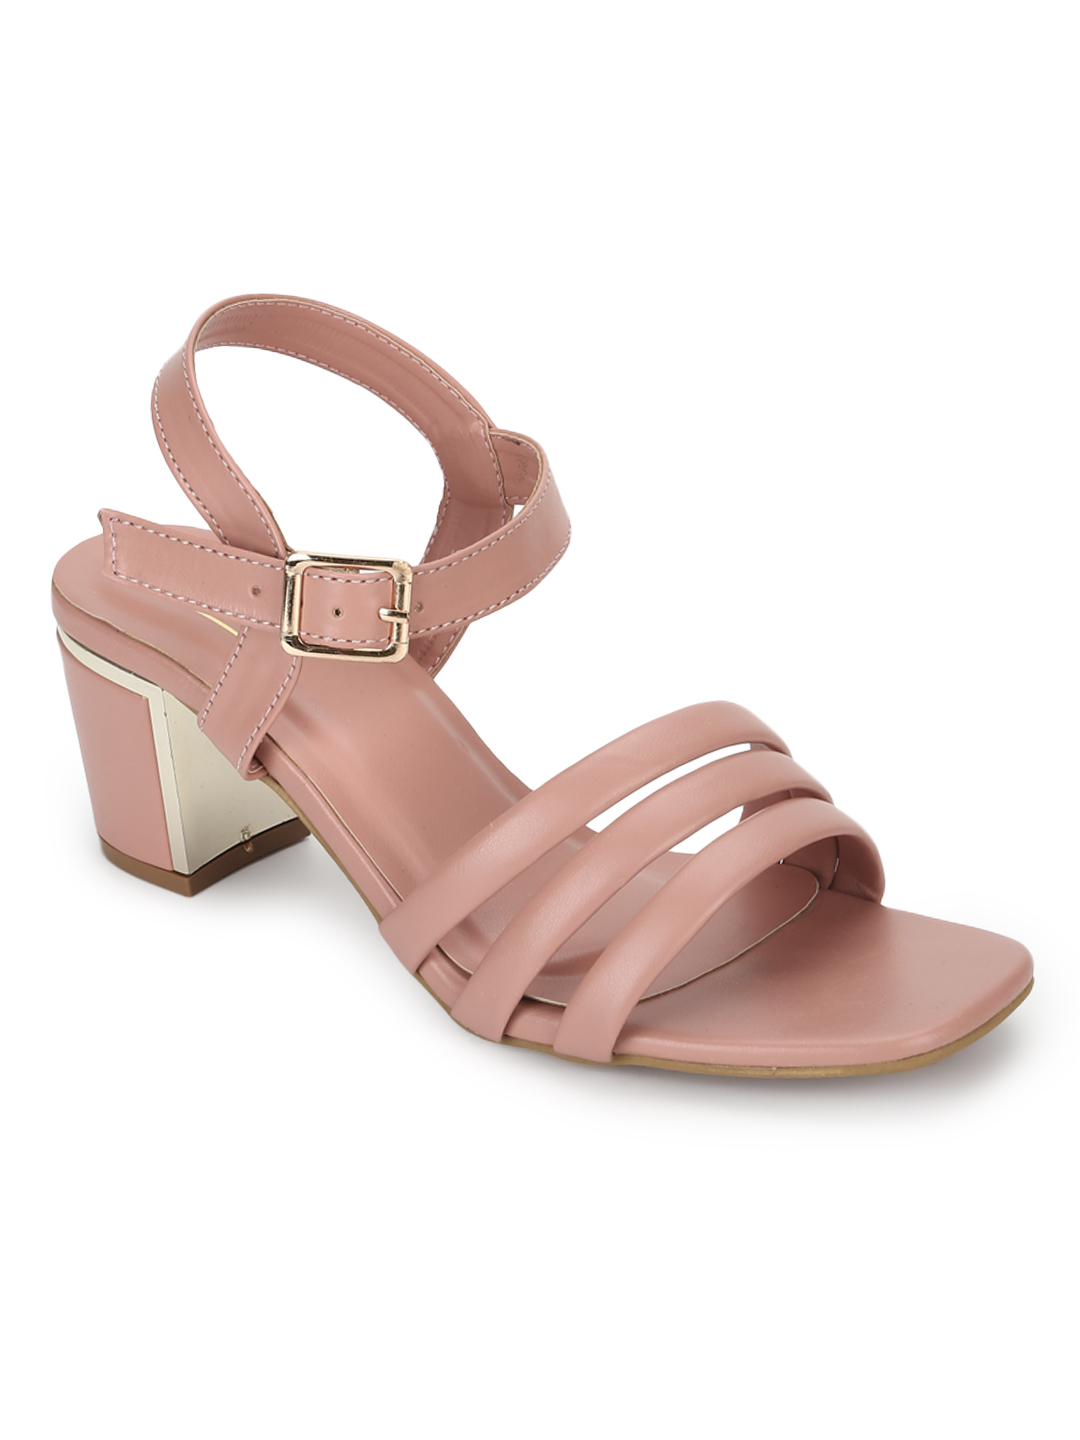 Truffle Collection | Truffle Collection Nude Pink PU Block Heel Sandals